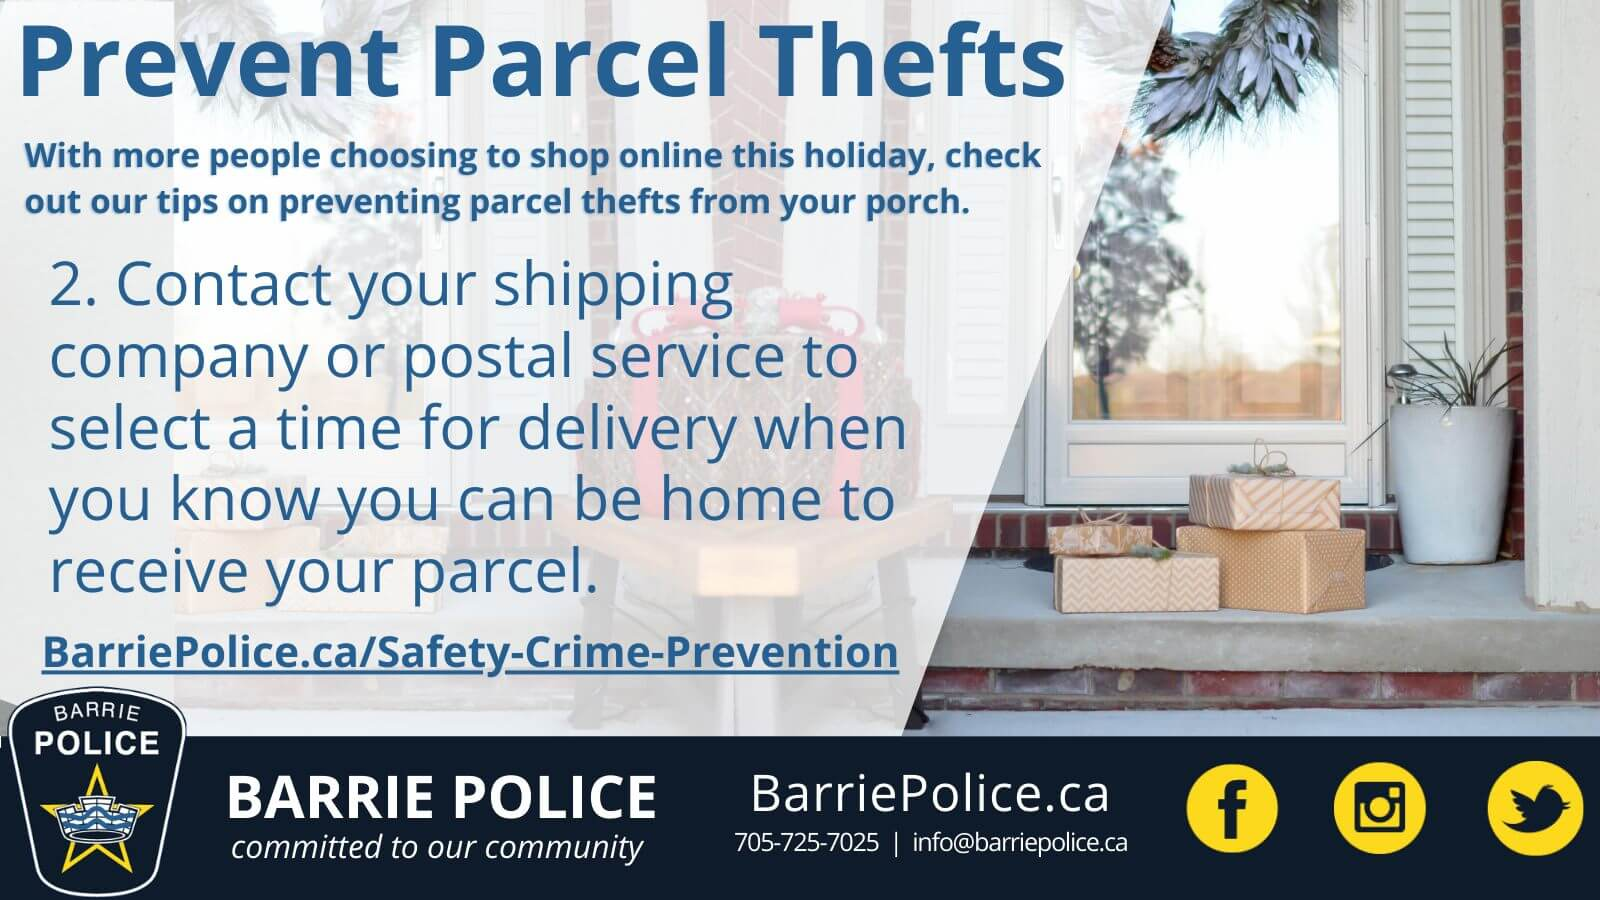 Prevent Parcel Thefts Tip 2: select delivery time